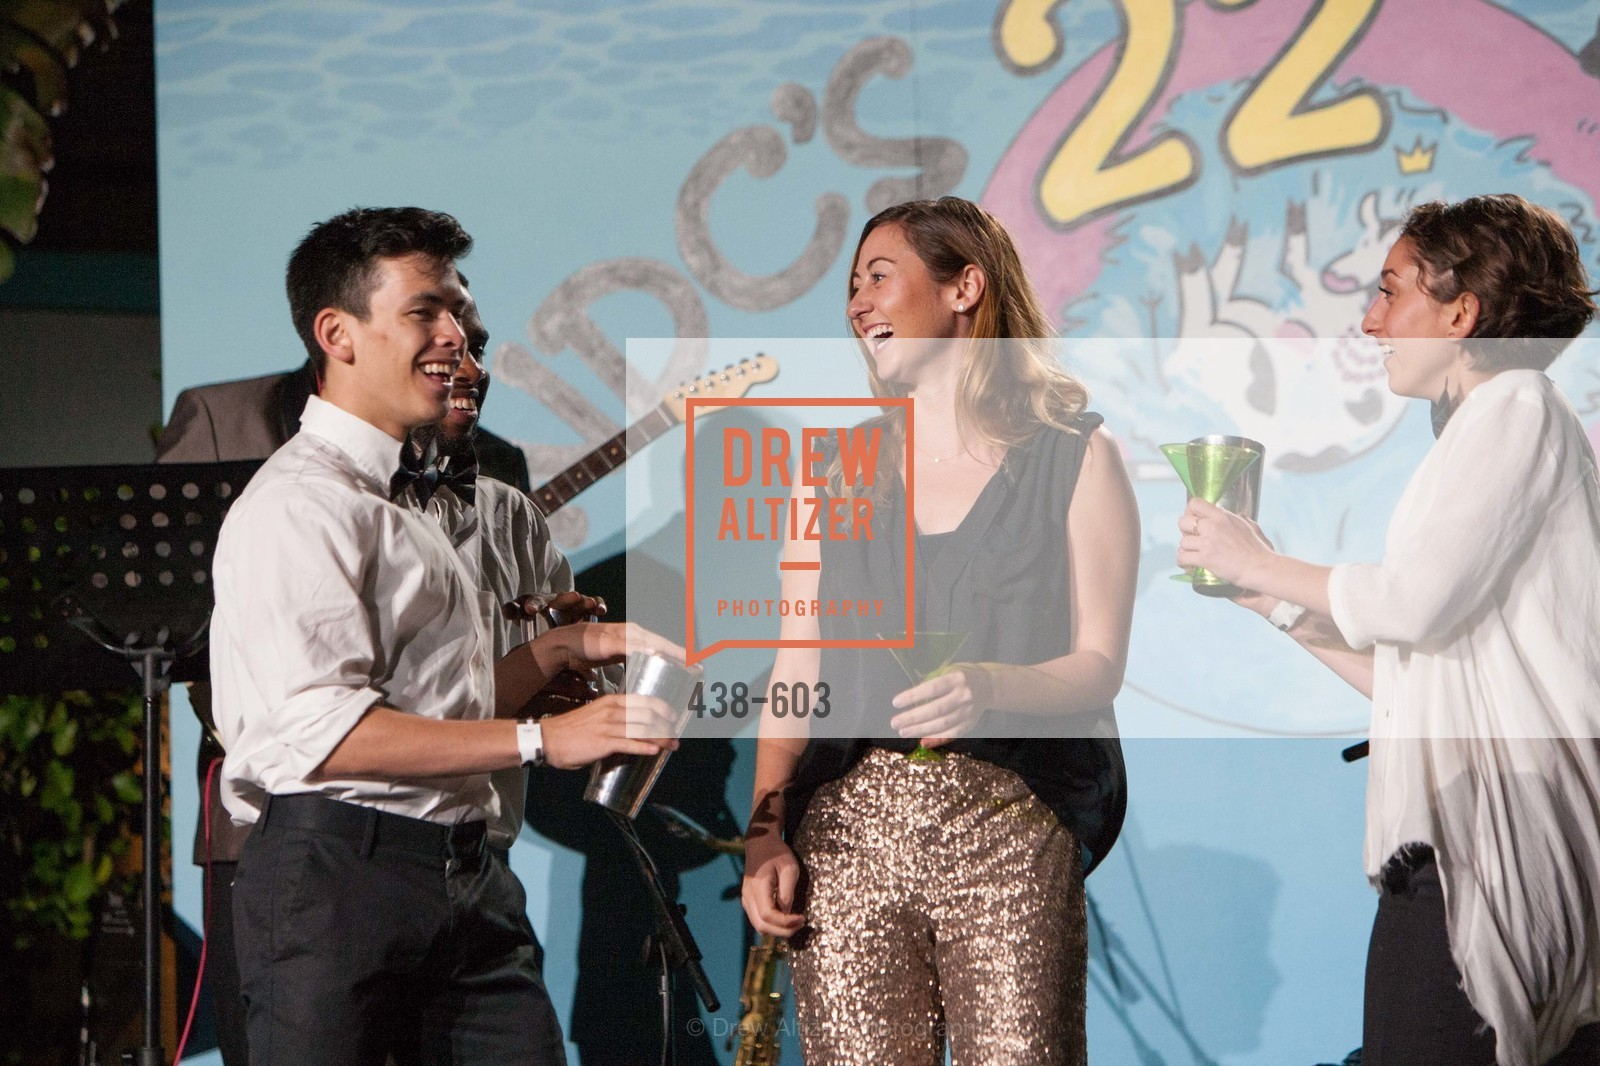 Rebecca Miller, 22nd Annual TNDC CELEBRITY POOL TOSS, US, October 8th, 2014,Drew Altizer, Drew Altizer Photography, full-service agency, private events, San Francisco photographer, photographer california